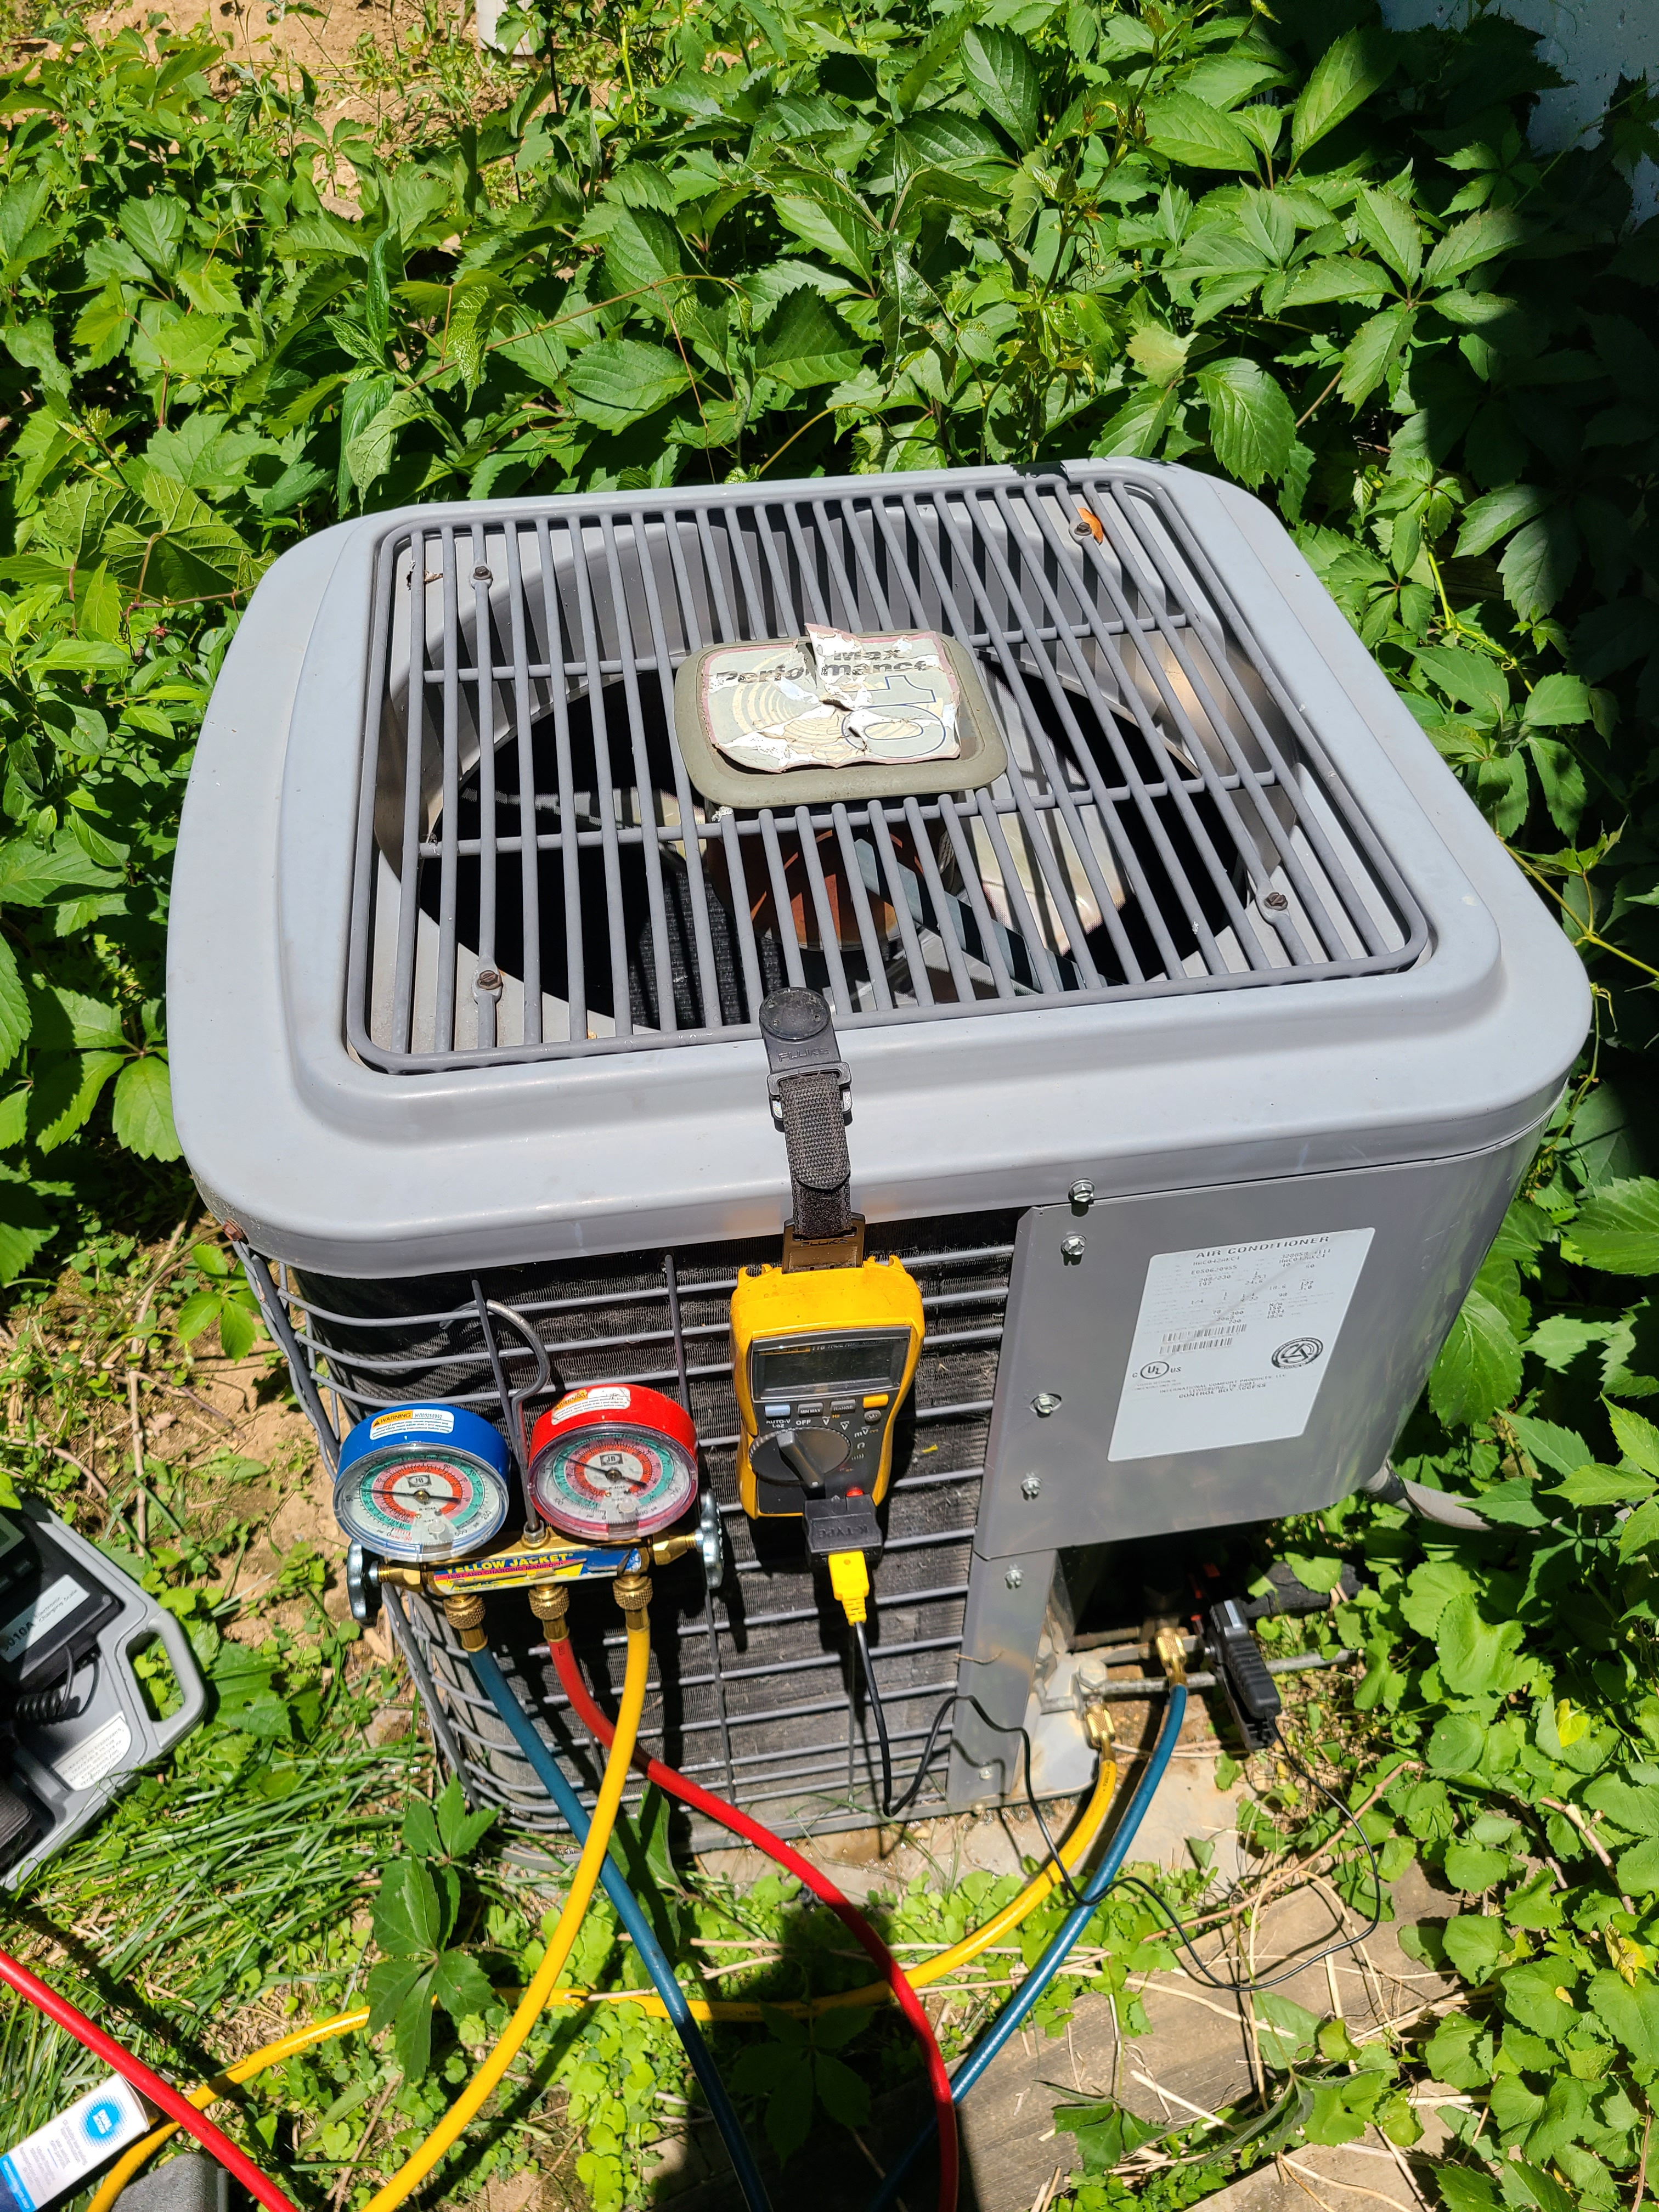 Heil ac no cooling issue diagnosed and repaired.